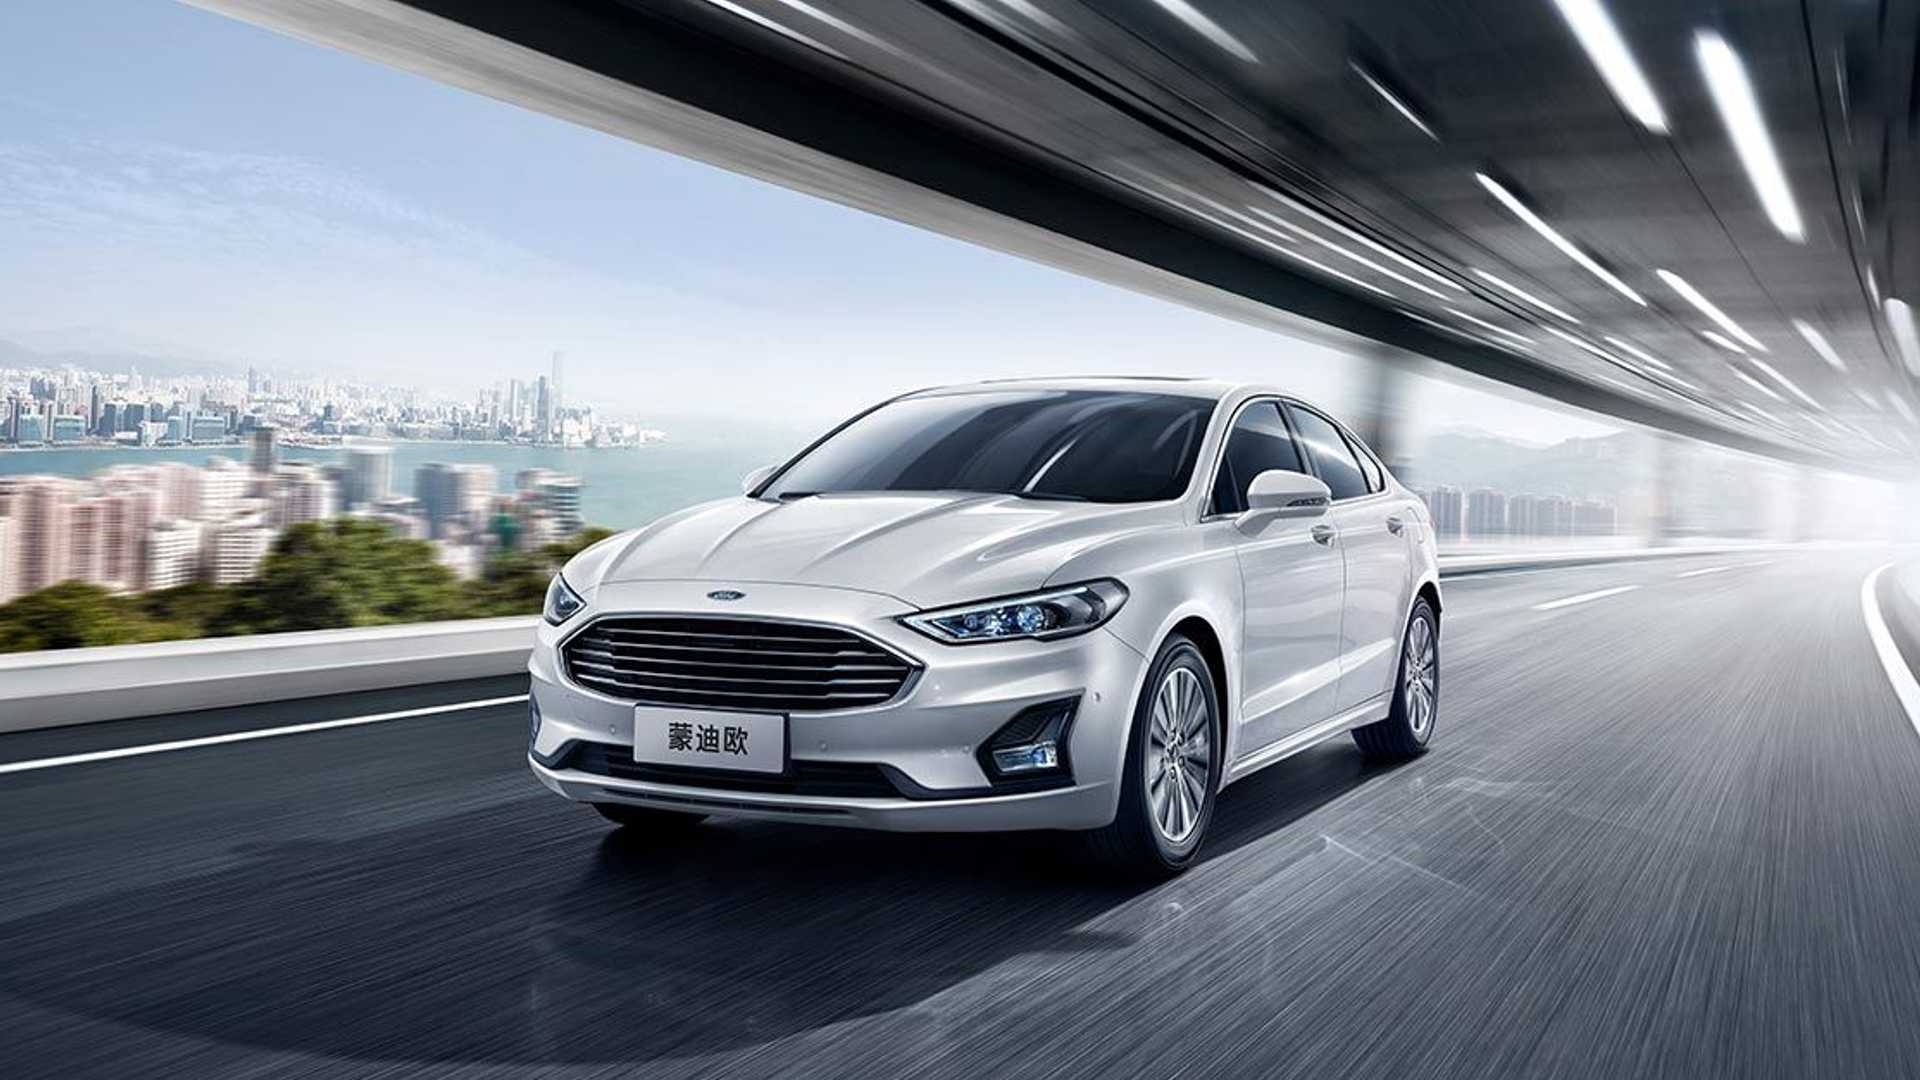 2020-ford-mondeo-facelift-china-spec